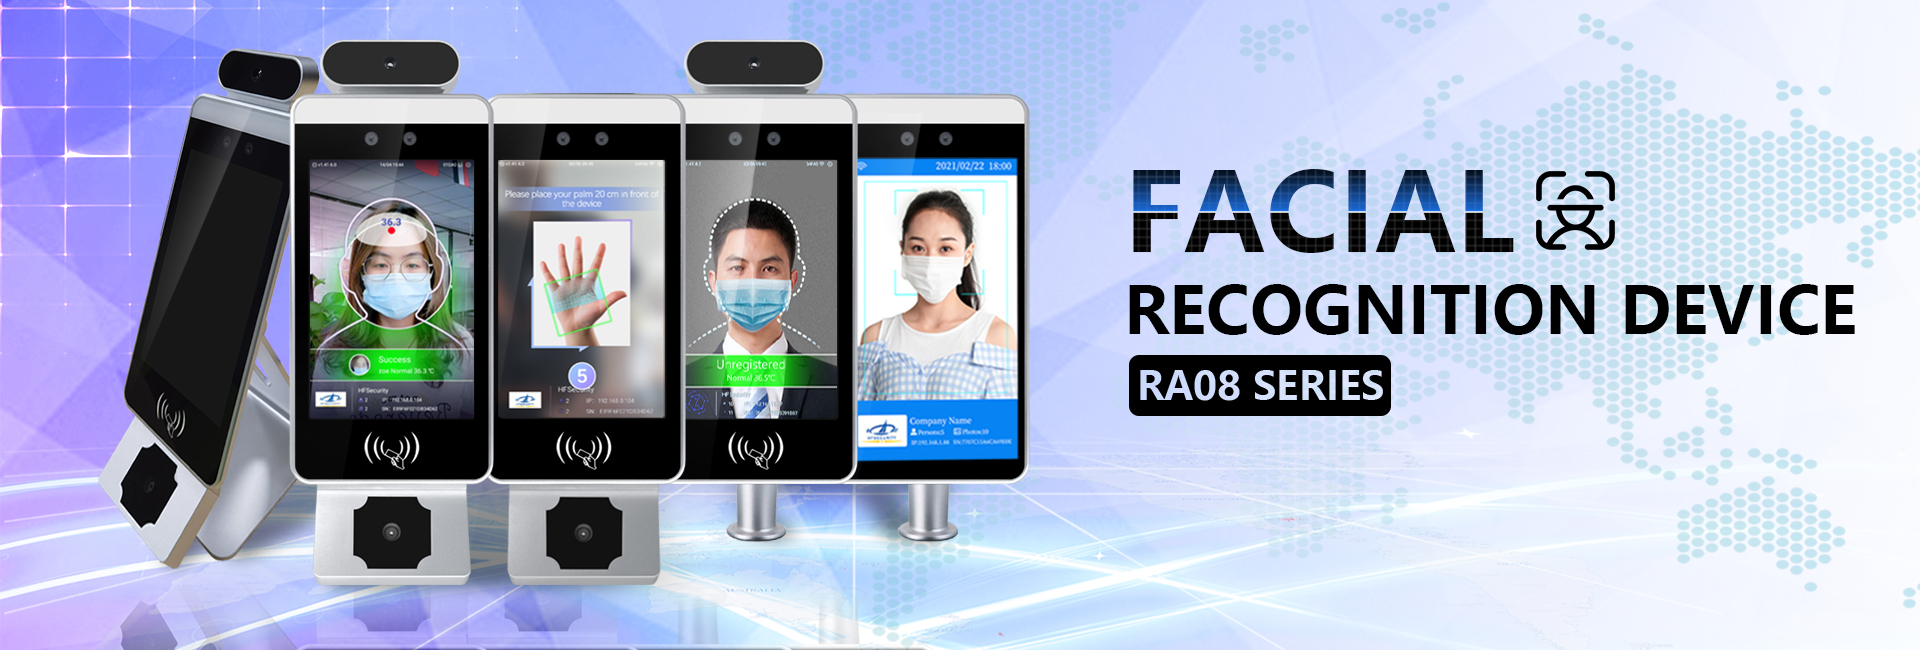 HFSecurity Biometric Face Recognition Device Factory